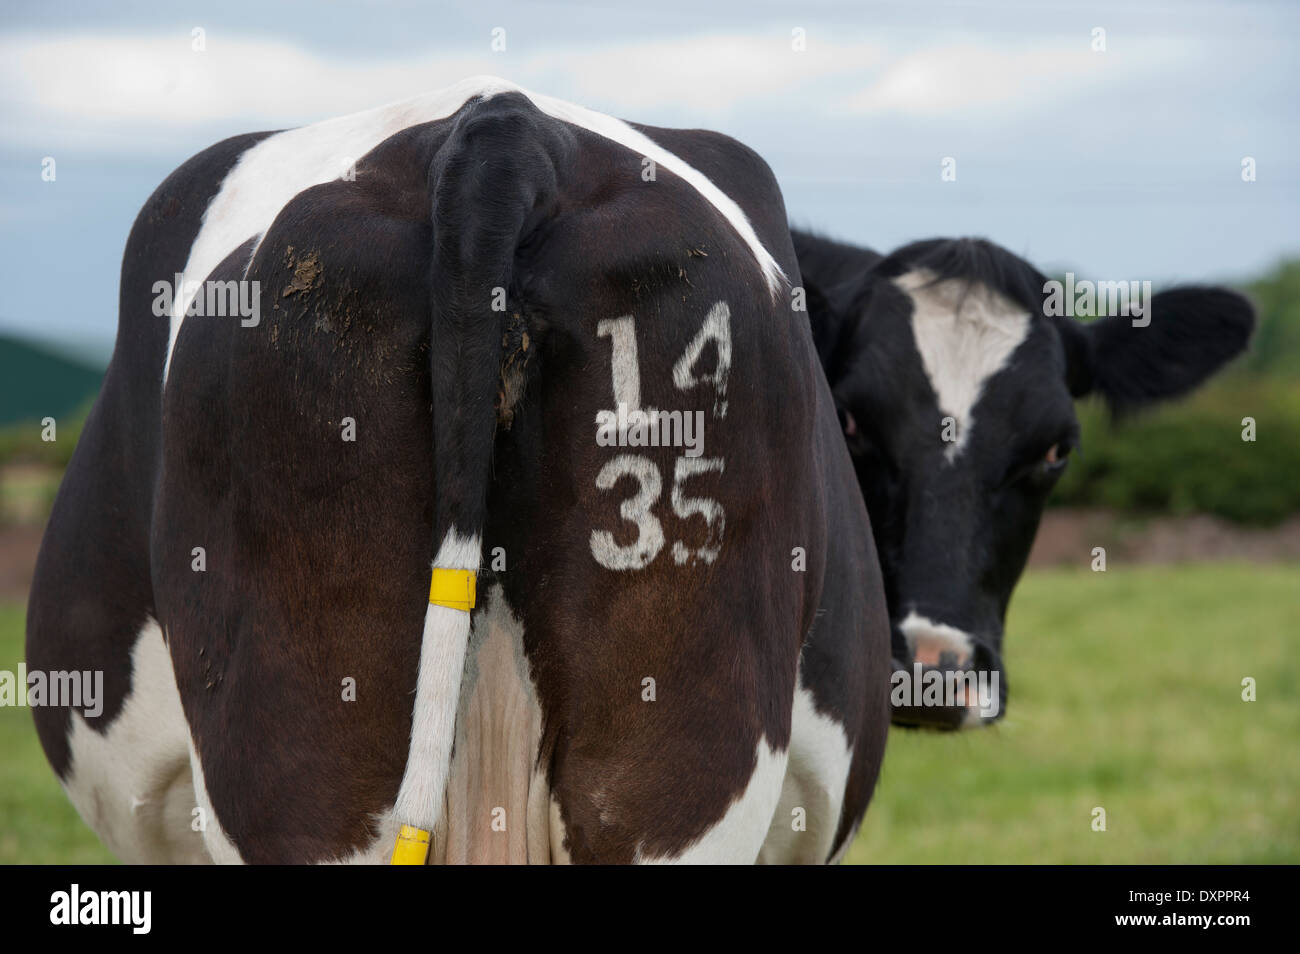 Cow with identification number freeze branded on its rear. Cumbria, UK - Stock Image